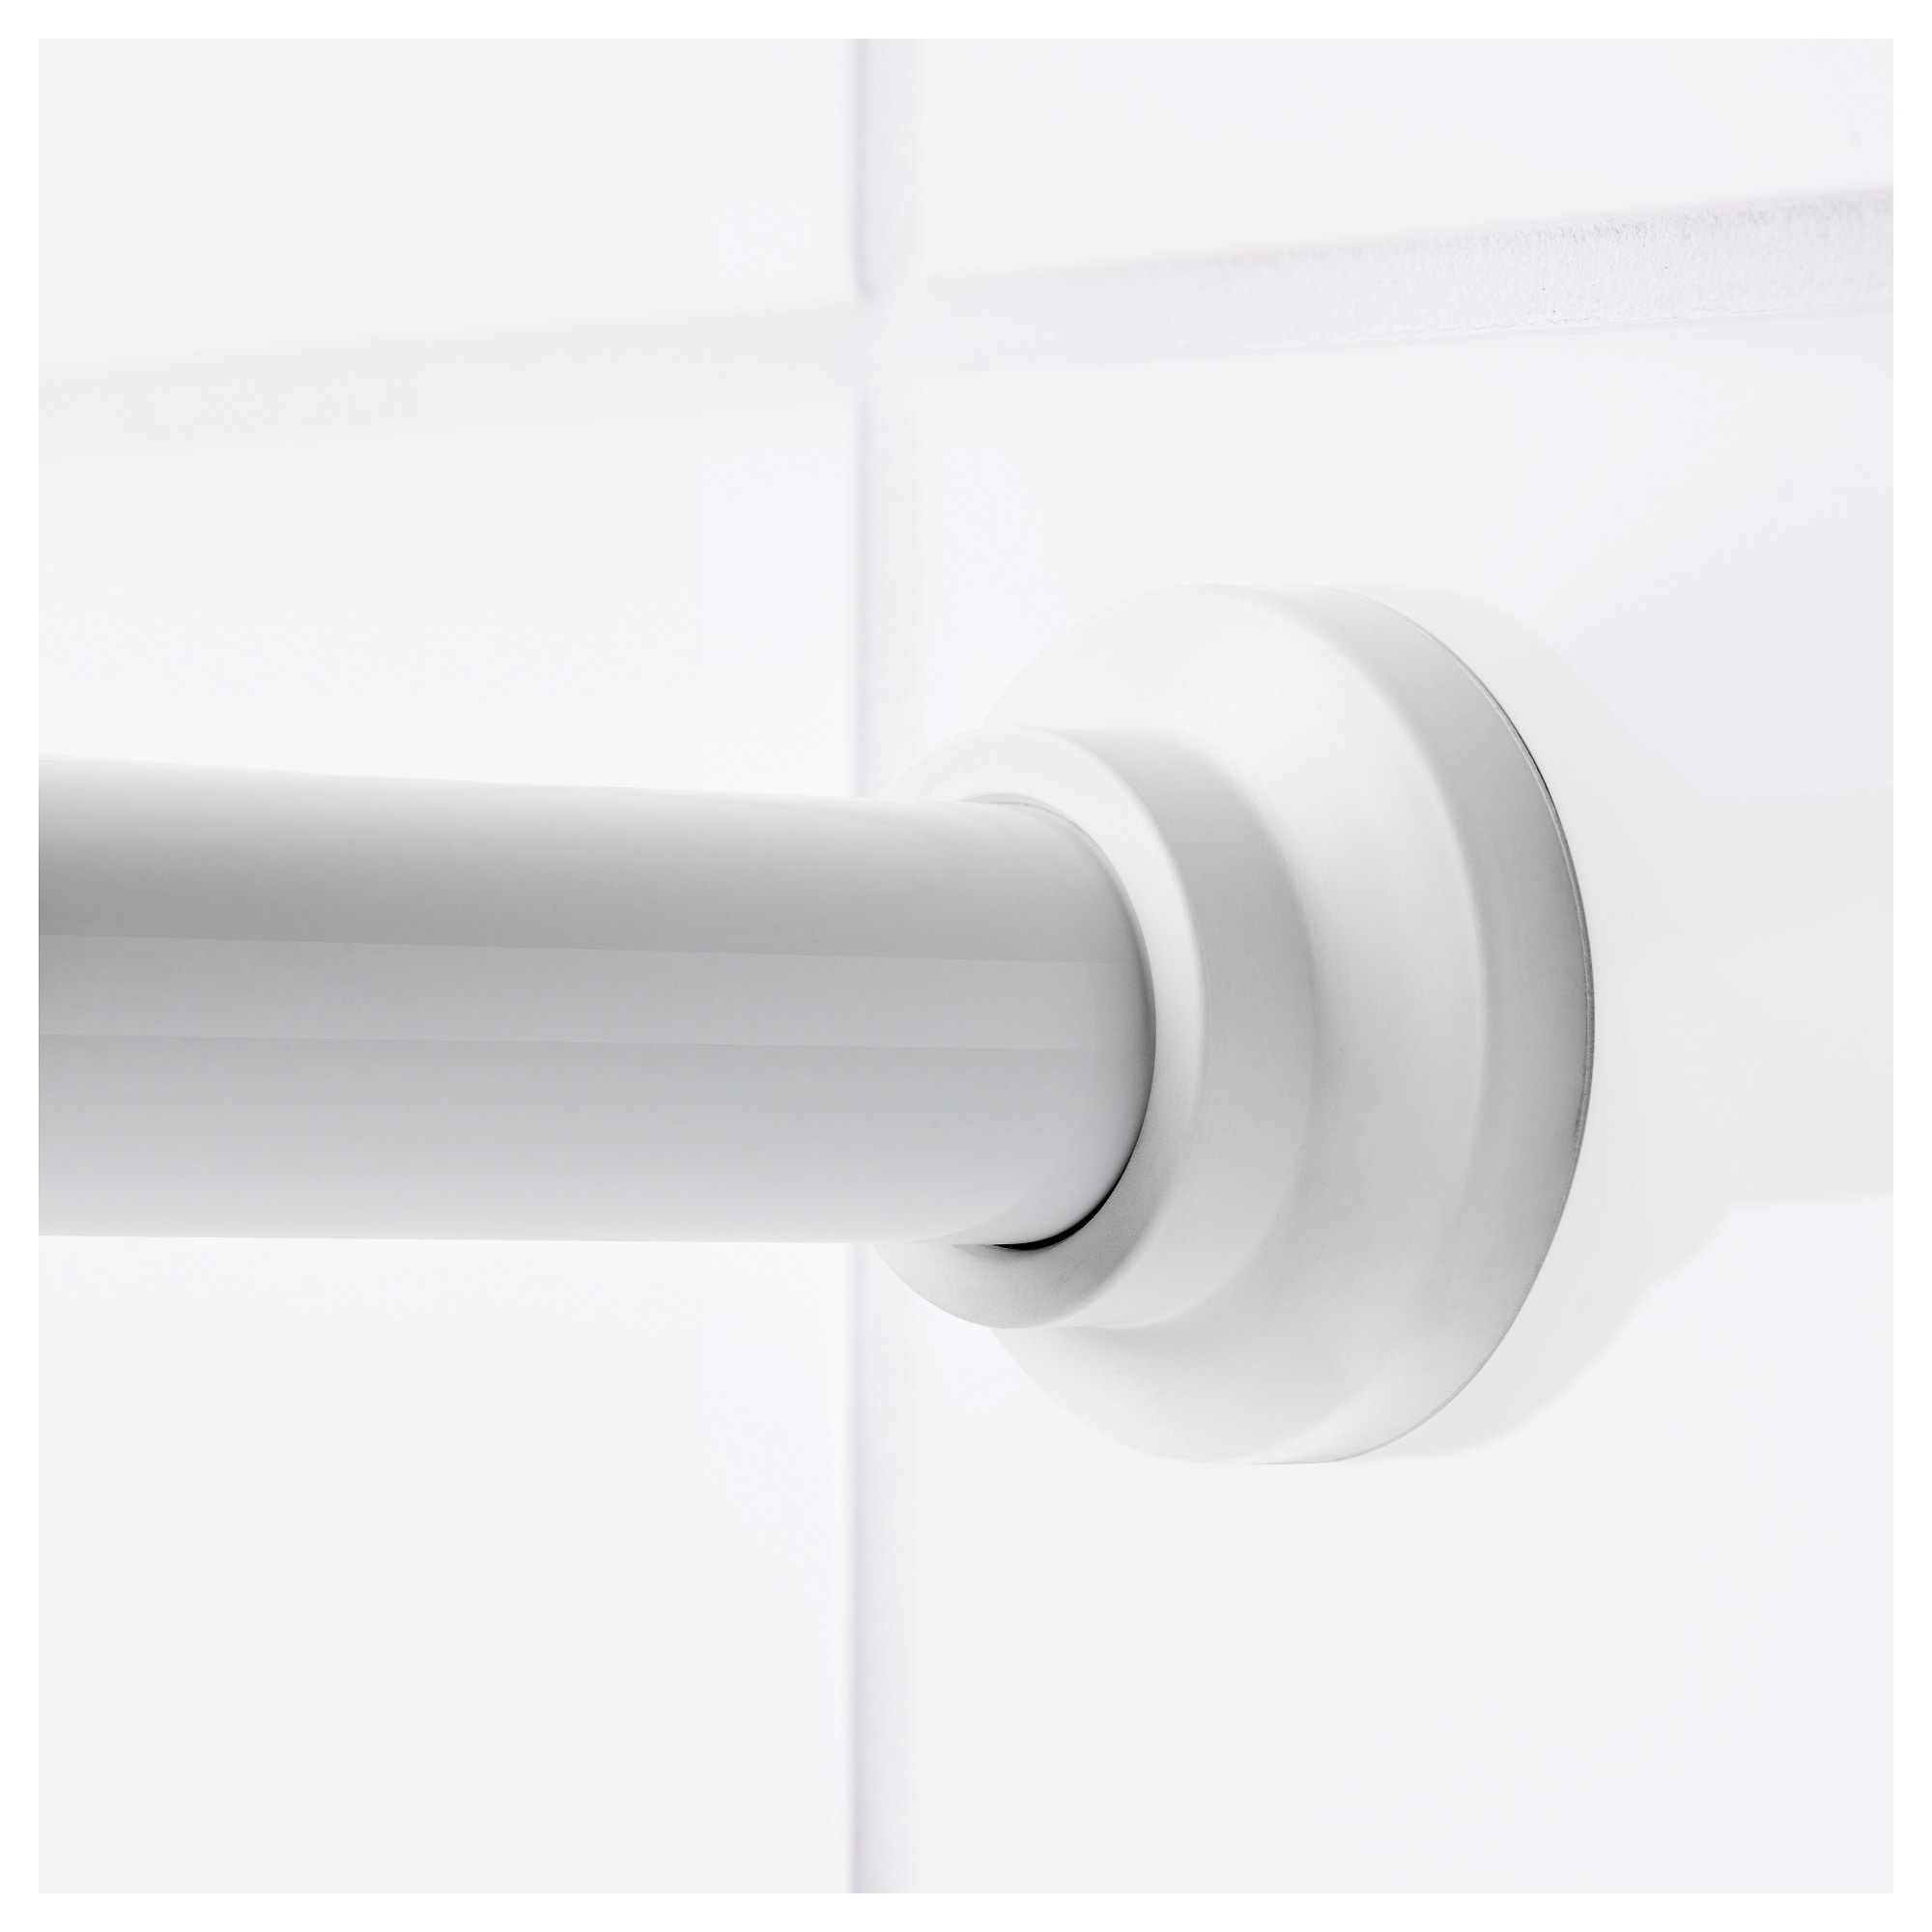 BOTAREN Shower curtain rod - IKEA